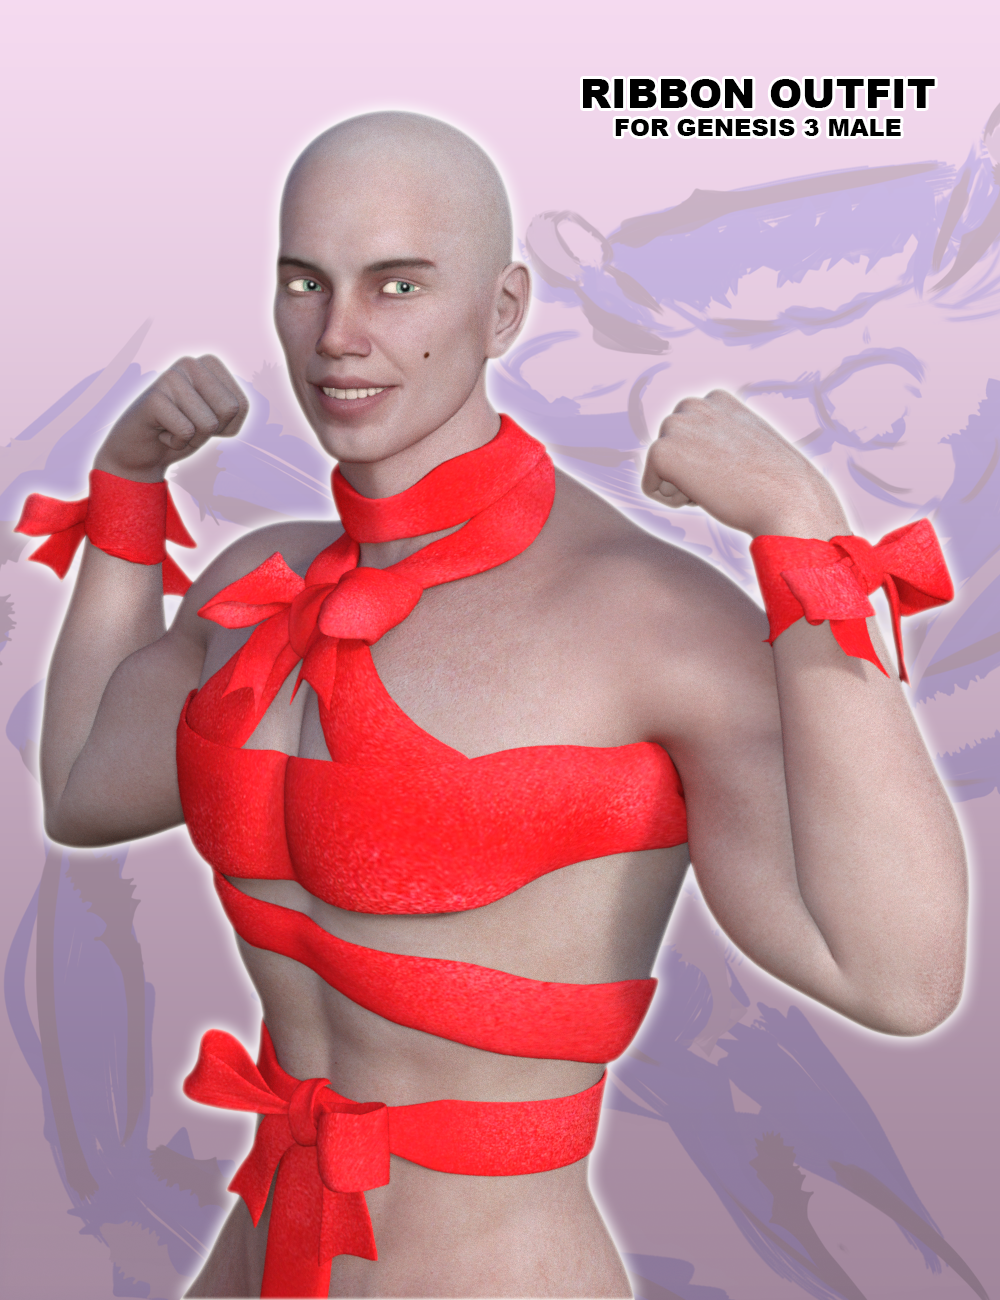 Ribbon Outfit for Genesis 3 Male